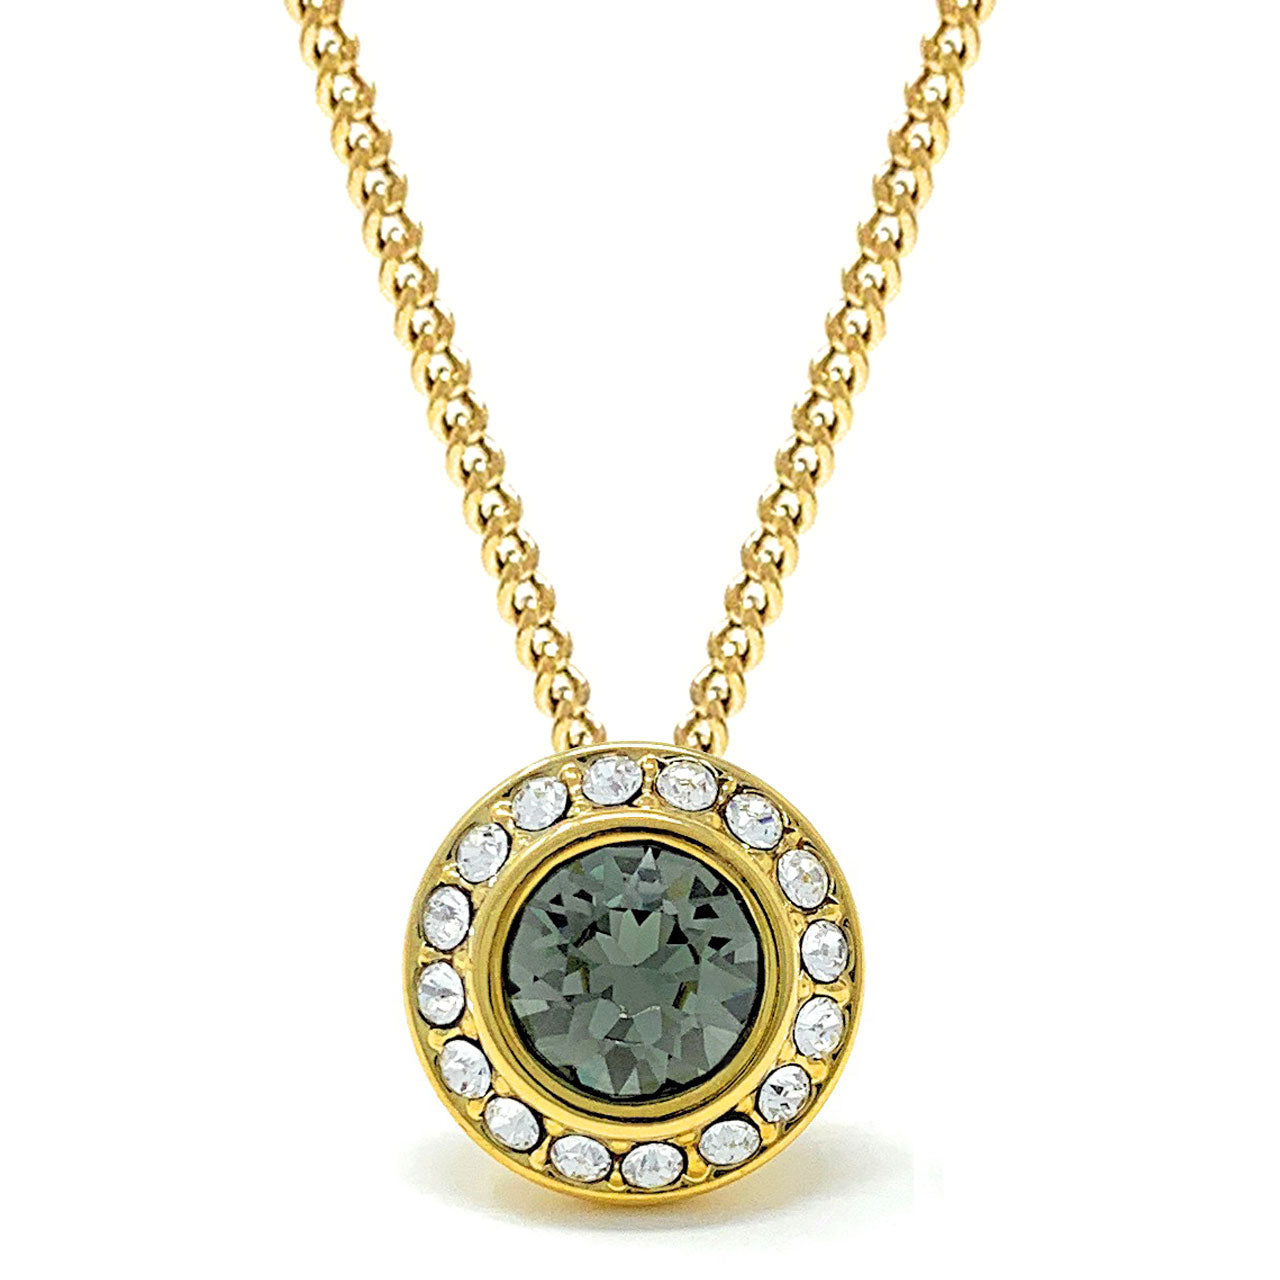 Halo Pave Pendant Necklace with Black Diamond Round Crystals from Swarovski Gold Plated - Ed Heart